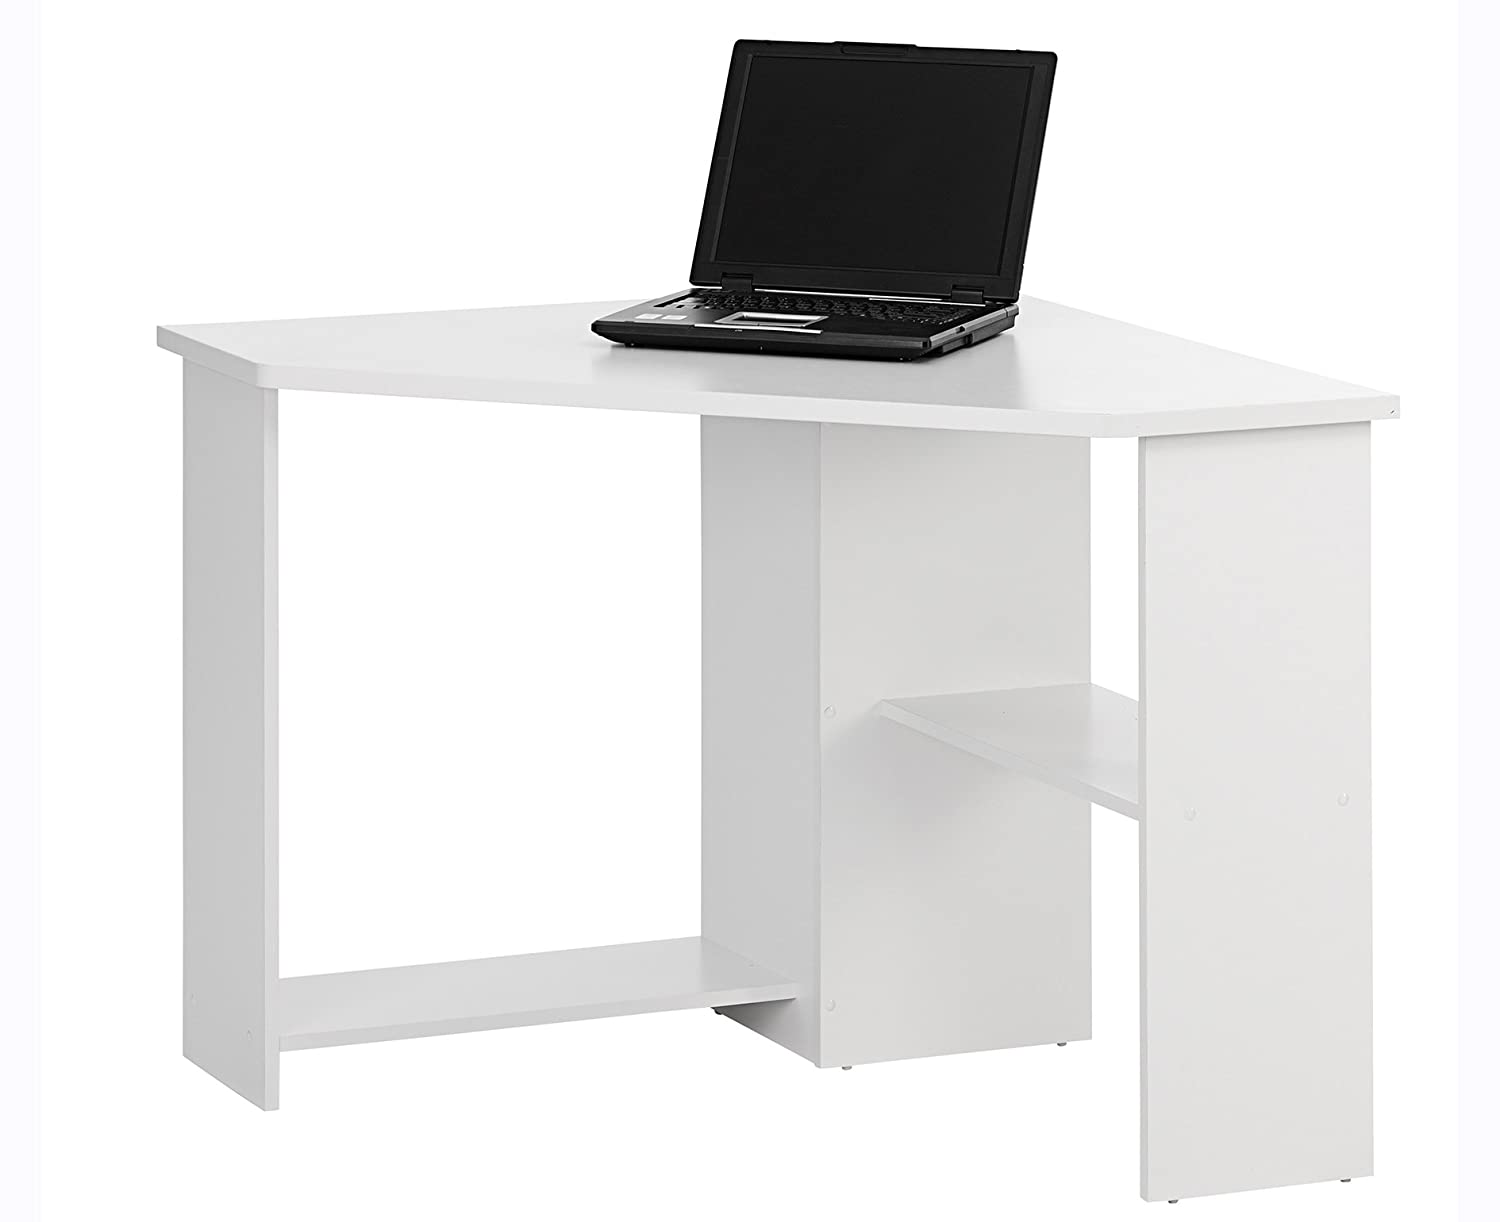 office desks corner. Bray Corner Home Office Desk - Color: White Finish: Amazon.co.uk: Kitchen \u0026 Desks